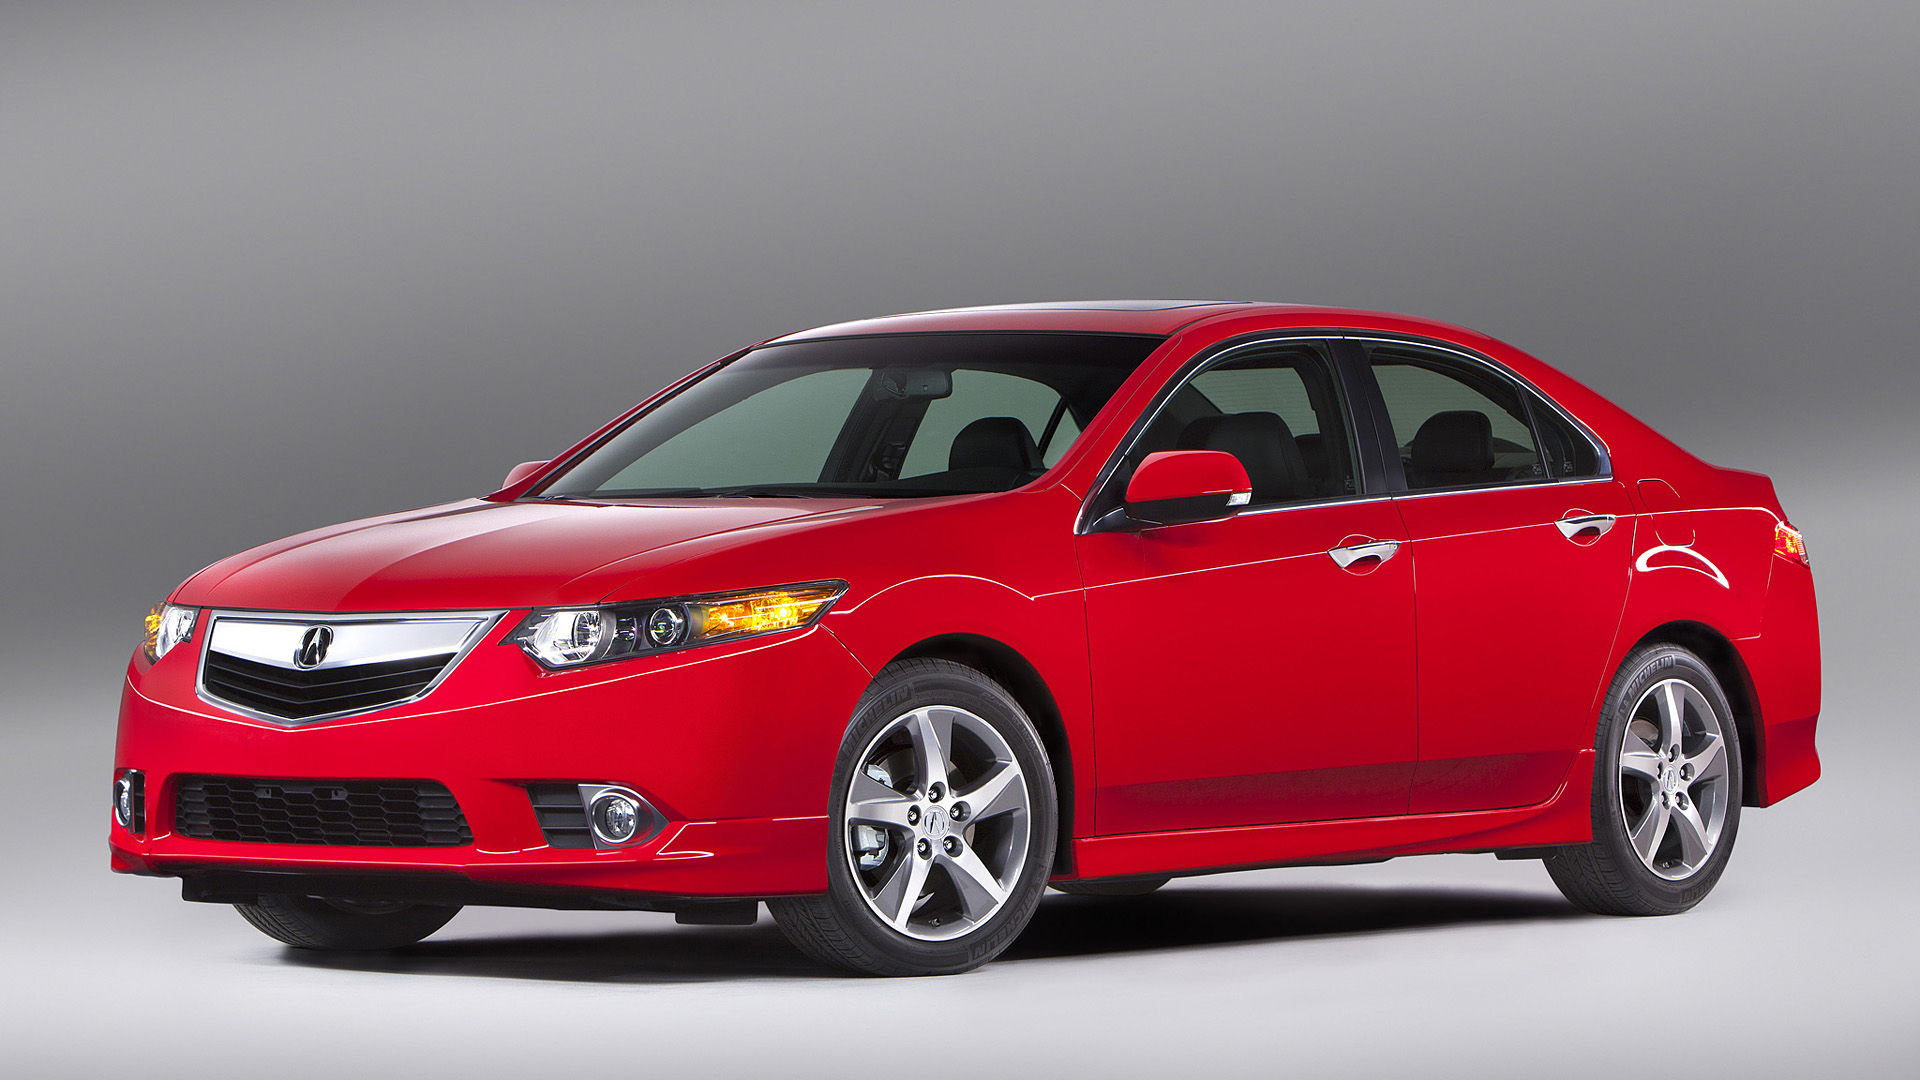 2011 Acura TSX Special Edition